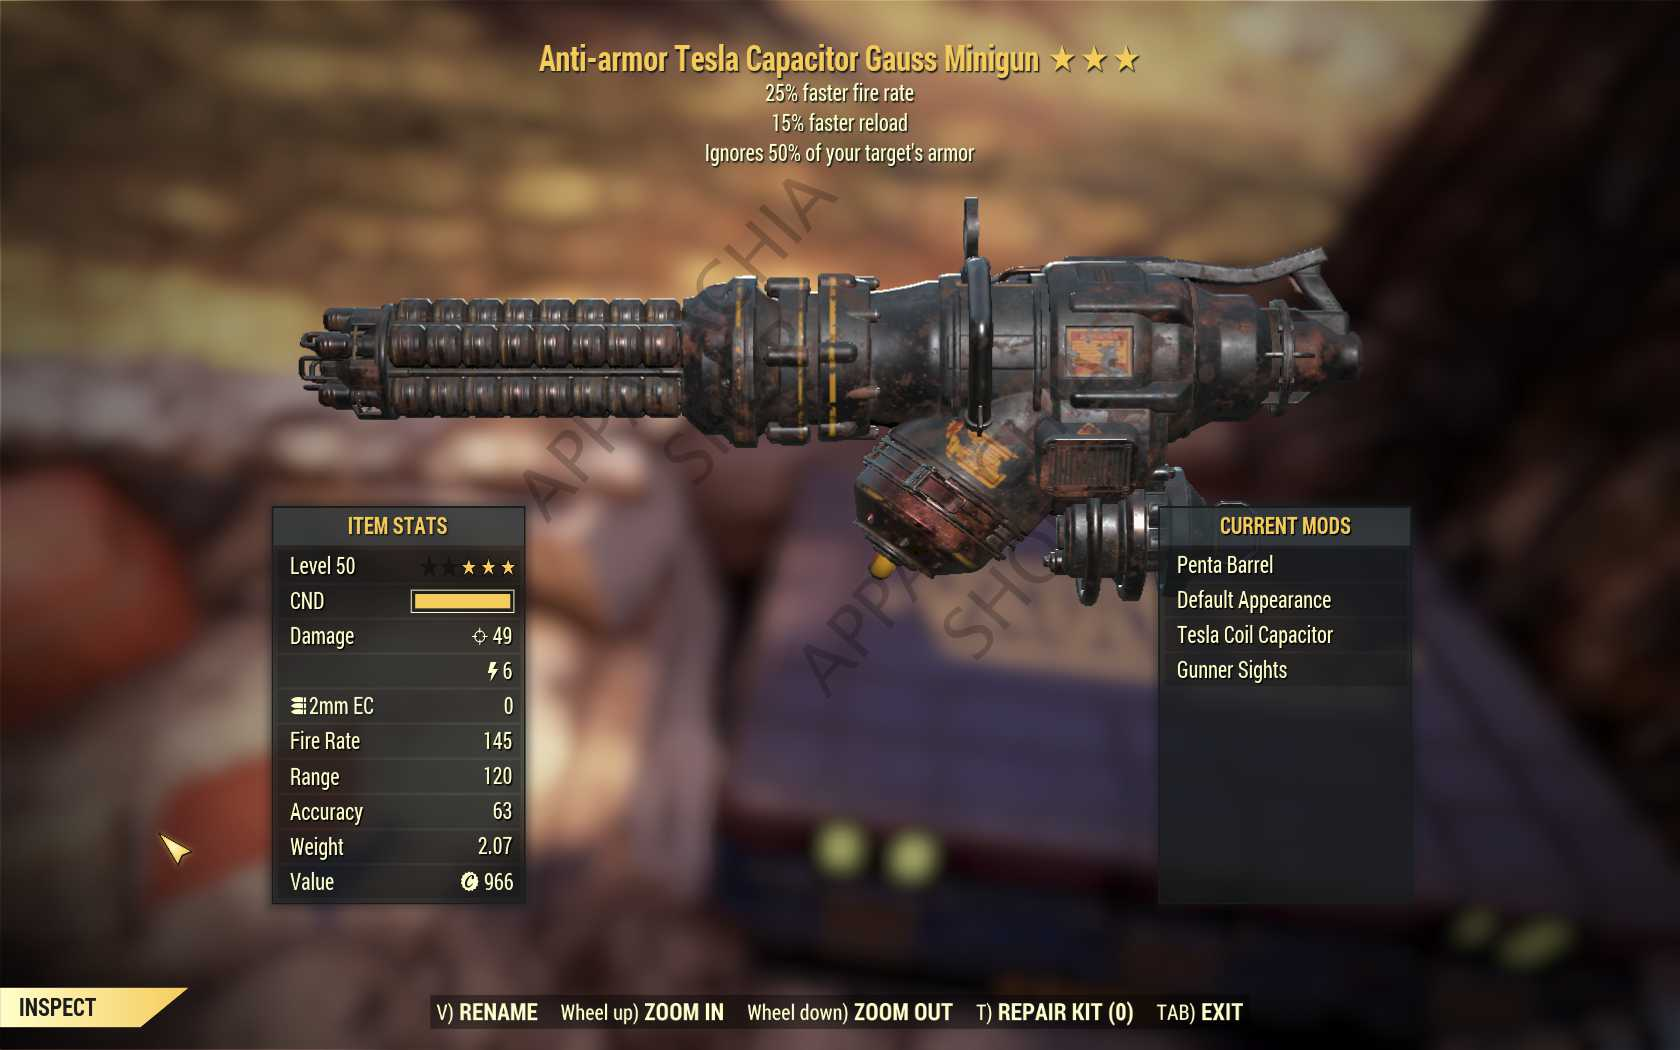 Anti-Armor Gauss Minigun (25% faster fire rate, 15% faster reload) FULL MODDED [Wastelanders]